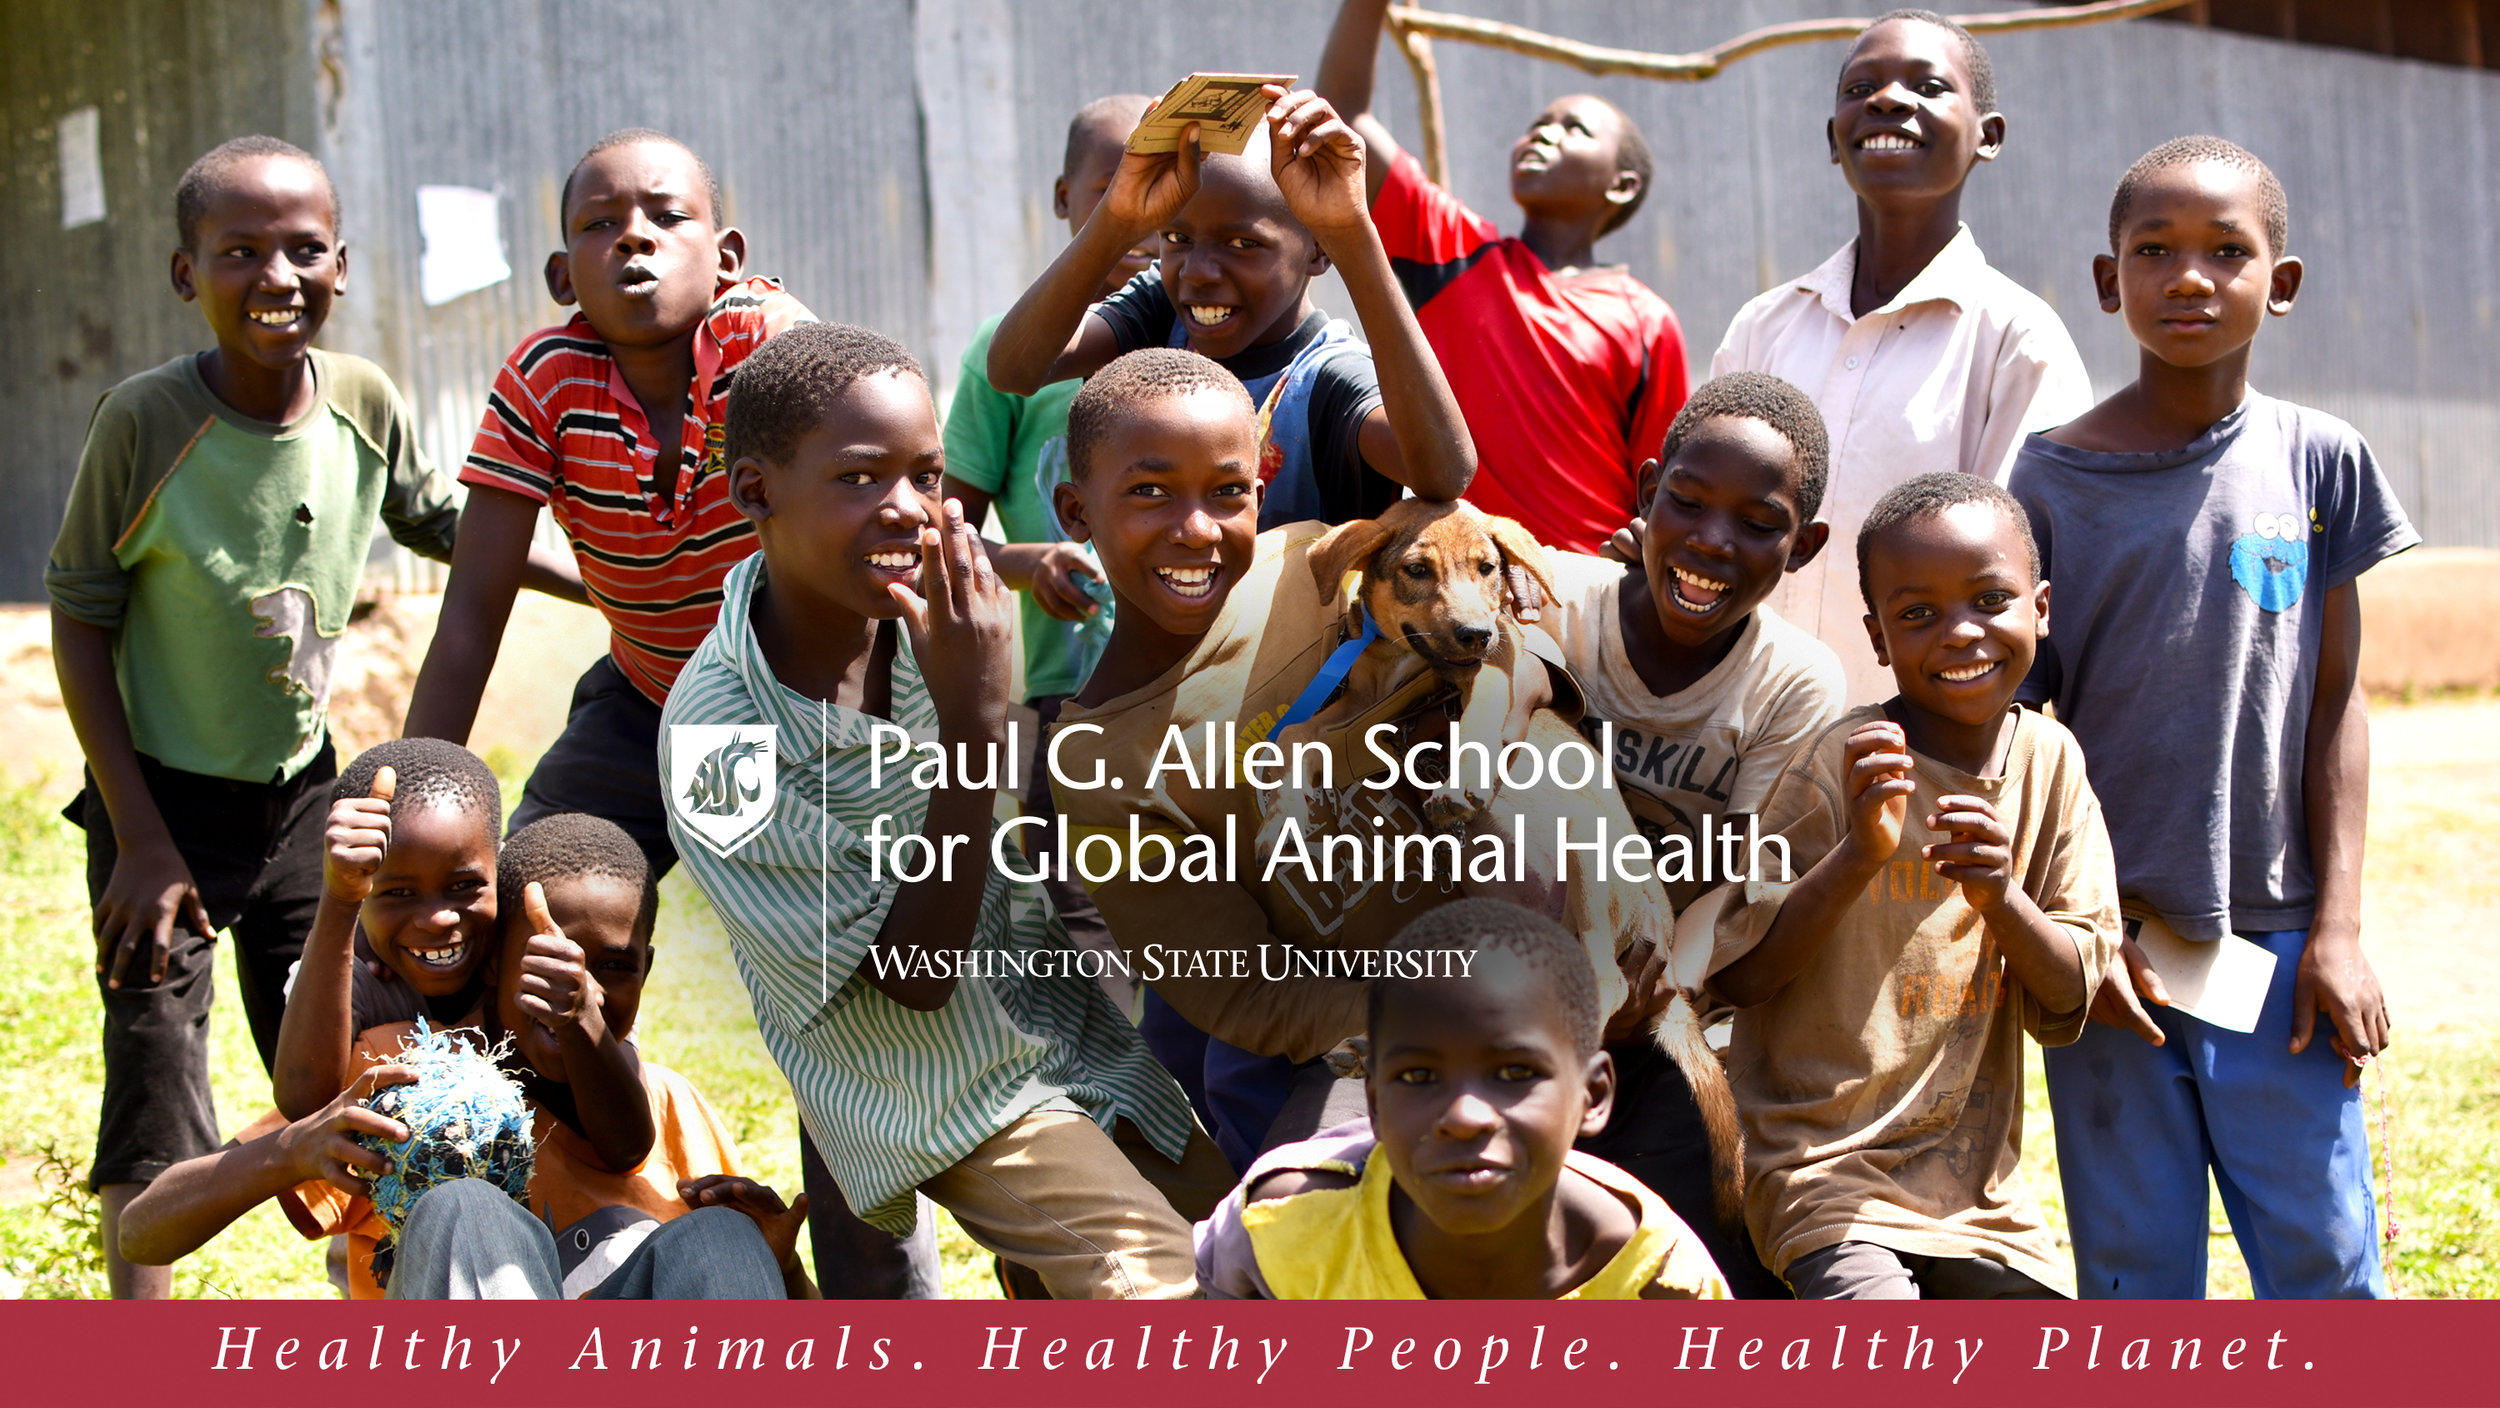 A few years ago, we learned Dr. Guy Palmer, one of our former vet school professors, was starting a campaign through the Paul G. Allen School for Global Animal Health to try to eliminate canine & human cases of Rabies worldwide.  Rabies kills more than 59,000 people a year, most of them children.  The Allen School has shown that Rabies deaths can be virtually eliminated by vaccinating the dogs in an area and through canine vaccination has created a Rabies-free zone along the Serengeti.  This not only protects the people and dogs in the area but also helps prevent the spread of Rabies to endangered wild animals. (To learn more about this project or to donate, see their website at  www.eliminaterabies.wsu.edu .)